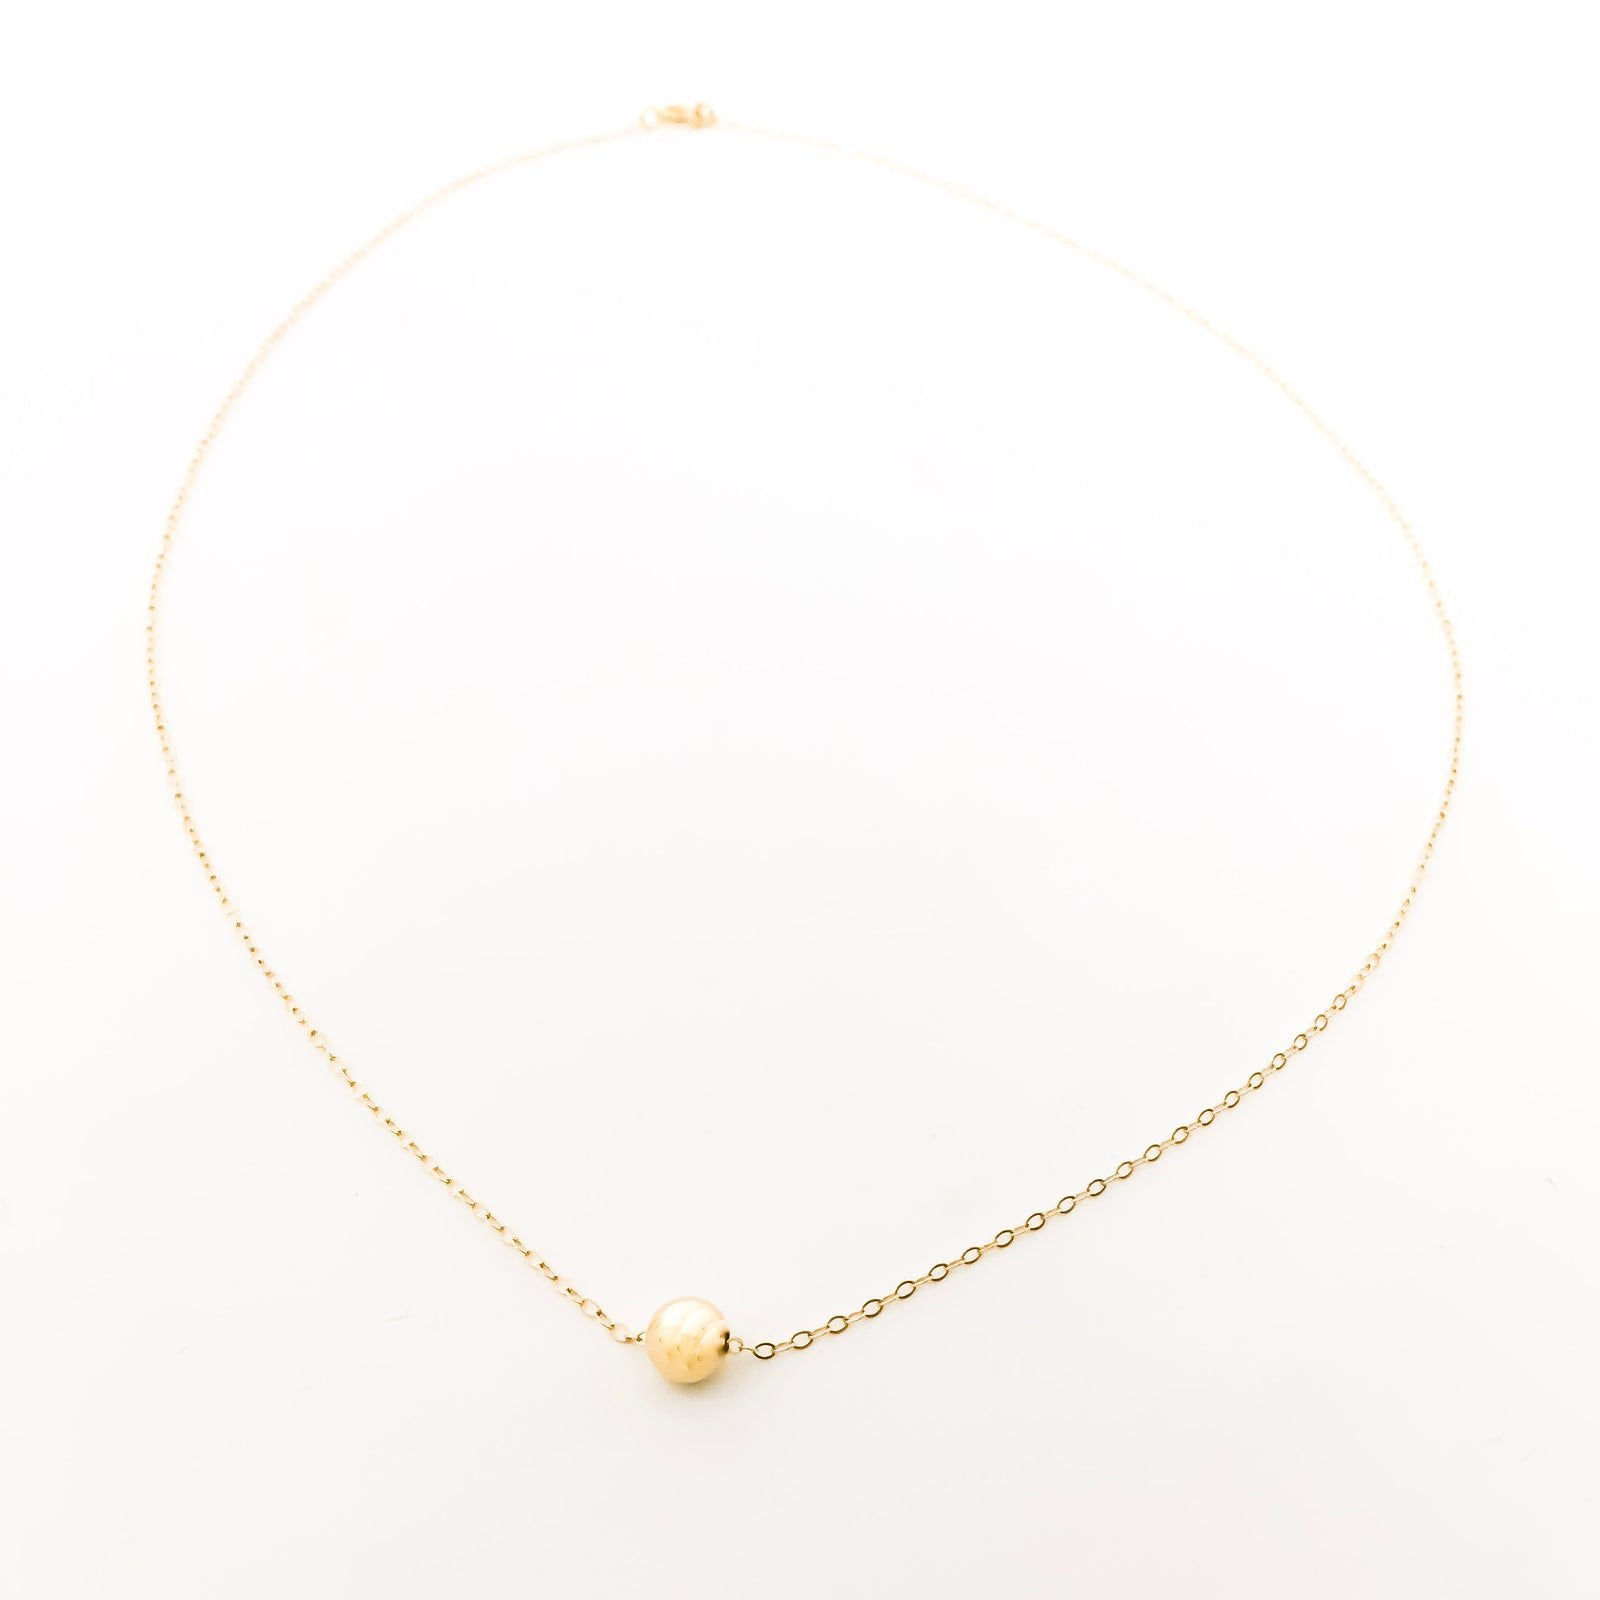 14K GOLD-FILLED SMOOTH HELD NECKLACE